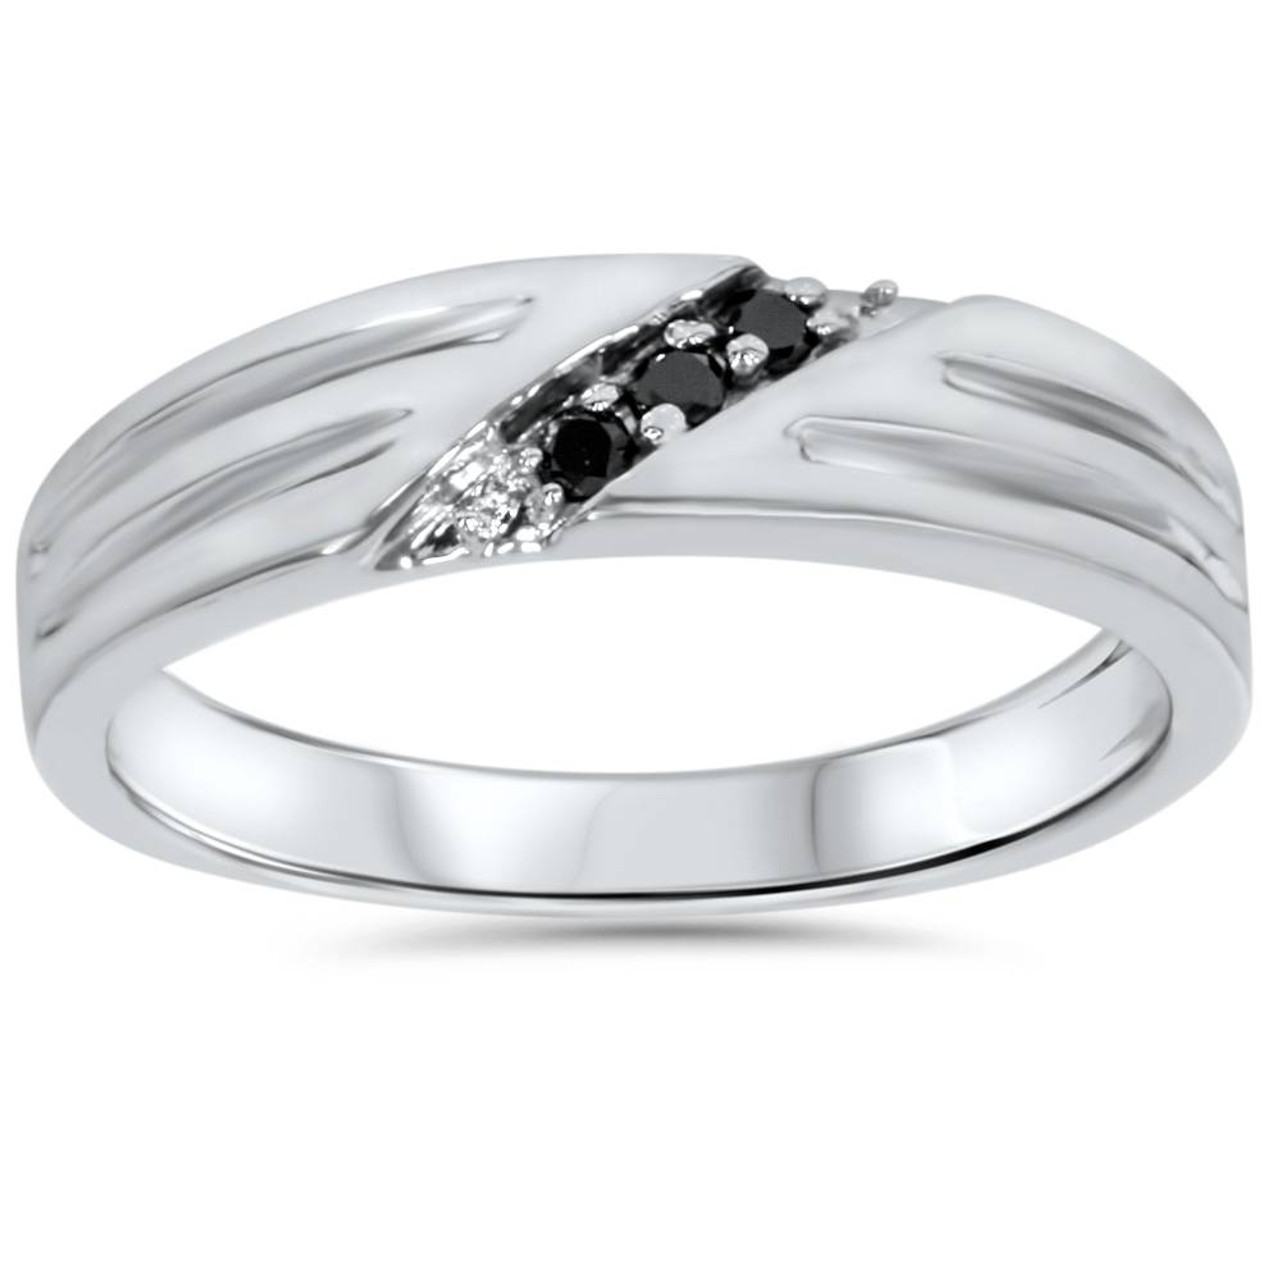 It is a photo of Black Diamond Mens Wedding Band Ring 34k White Gold (Black, AAA)